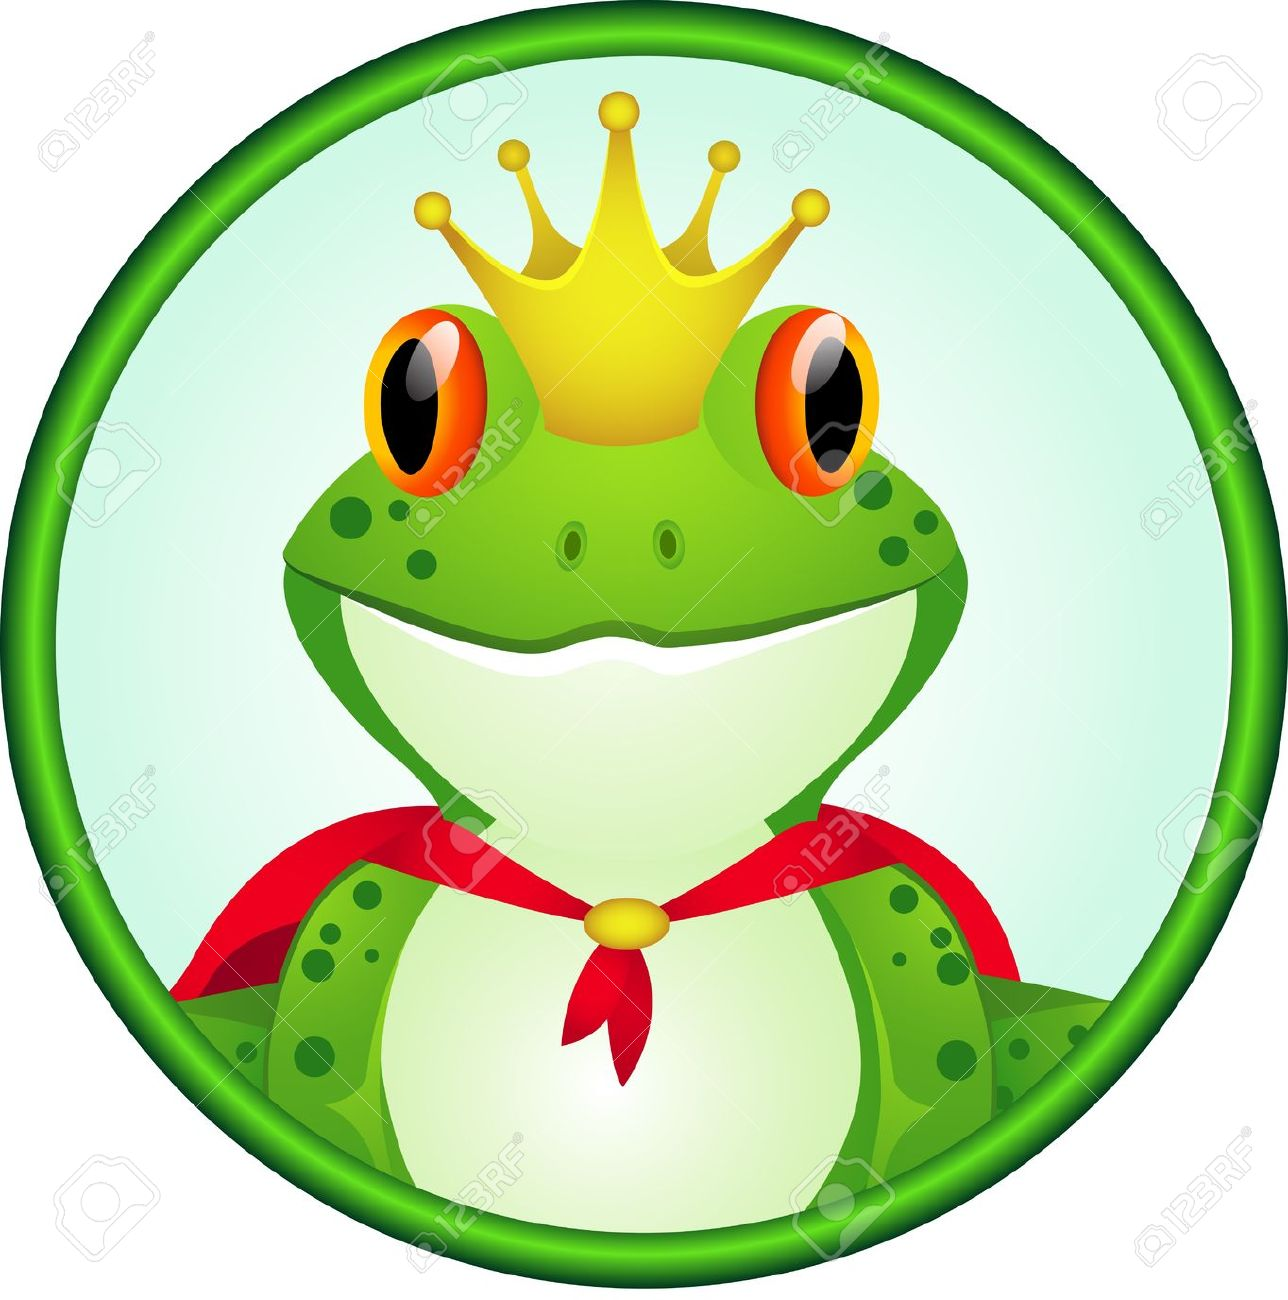 King Of Frog Cartoon Royalty Free Cliparts, Vectors, And Stock.